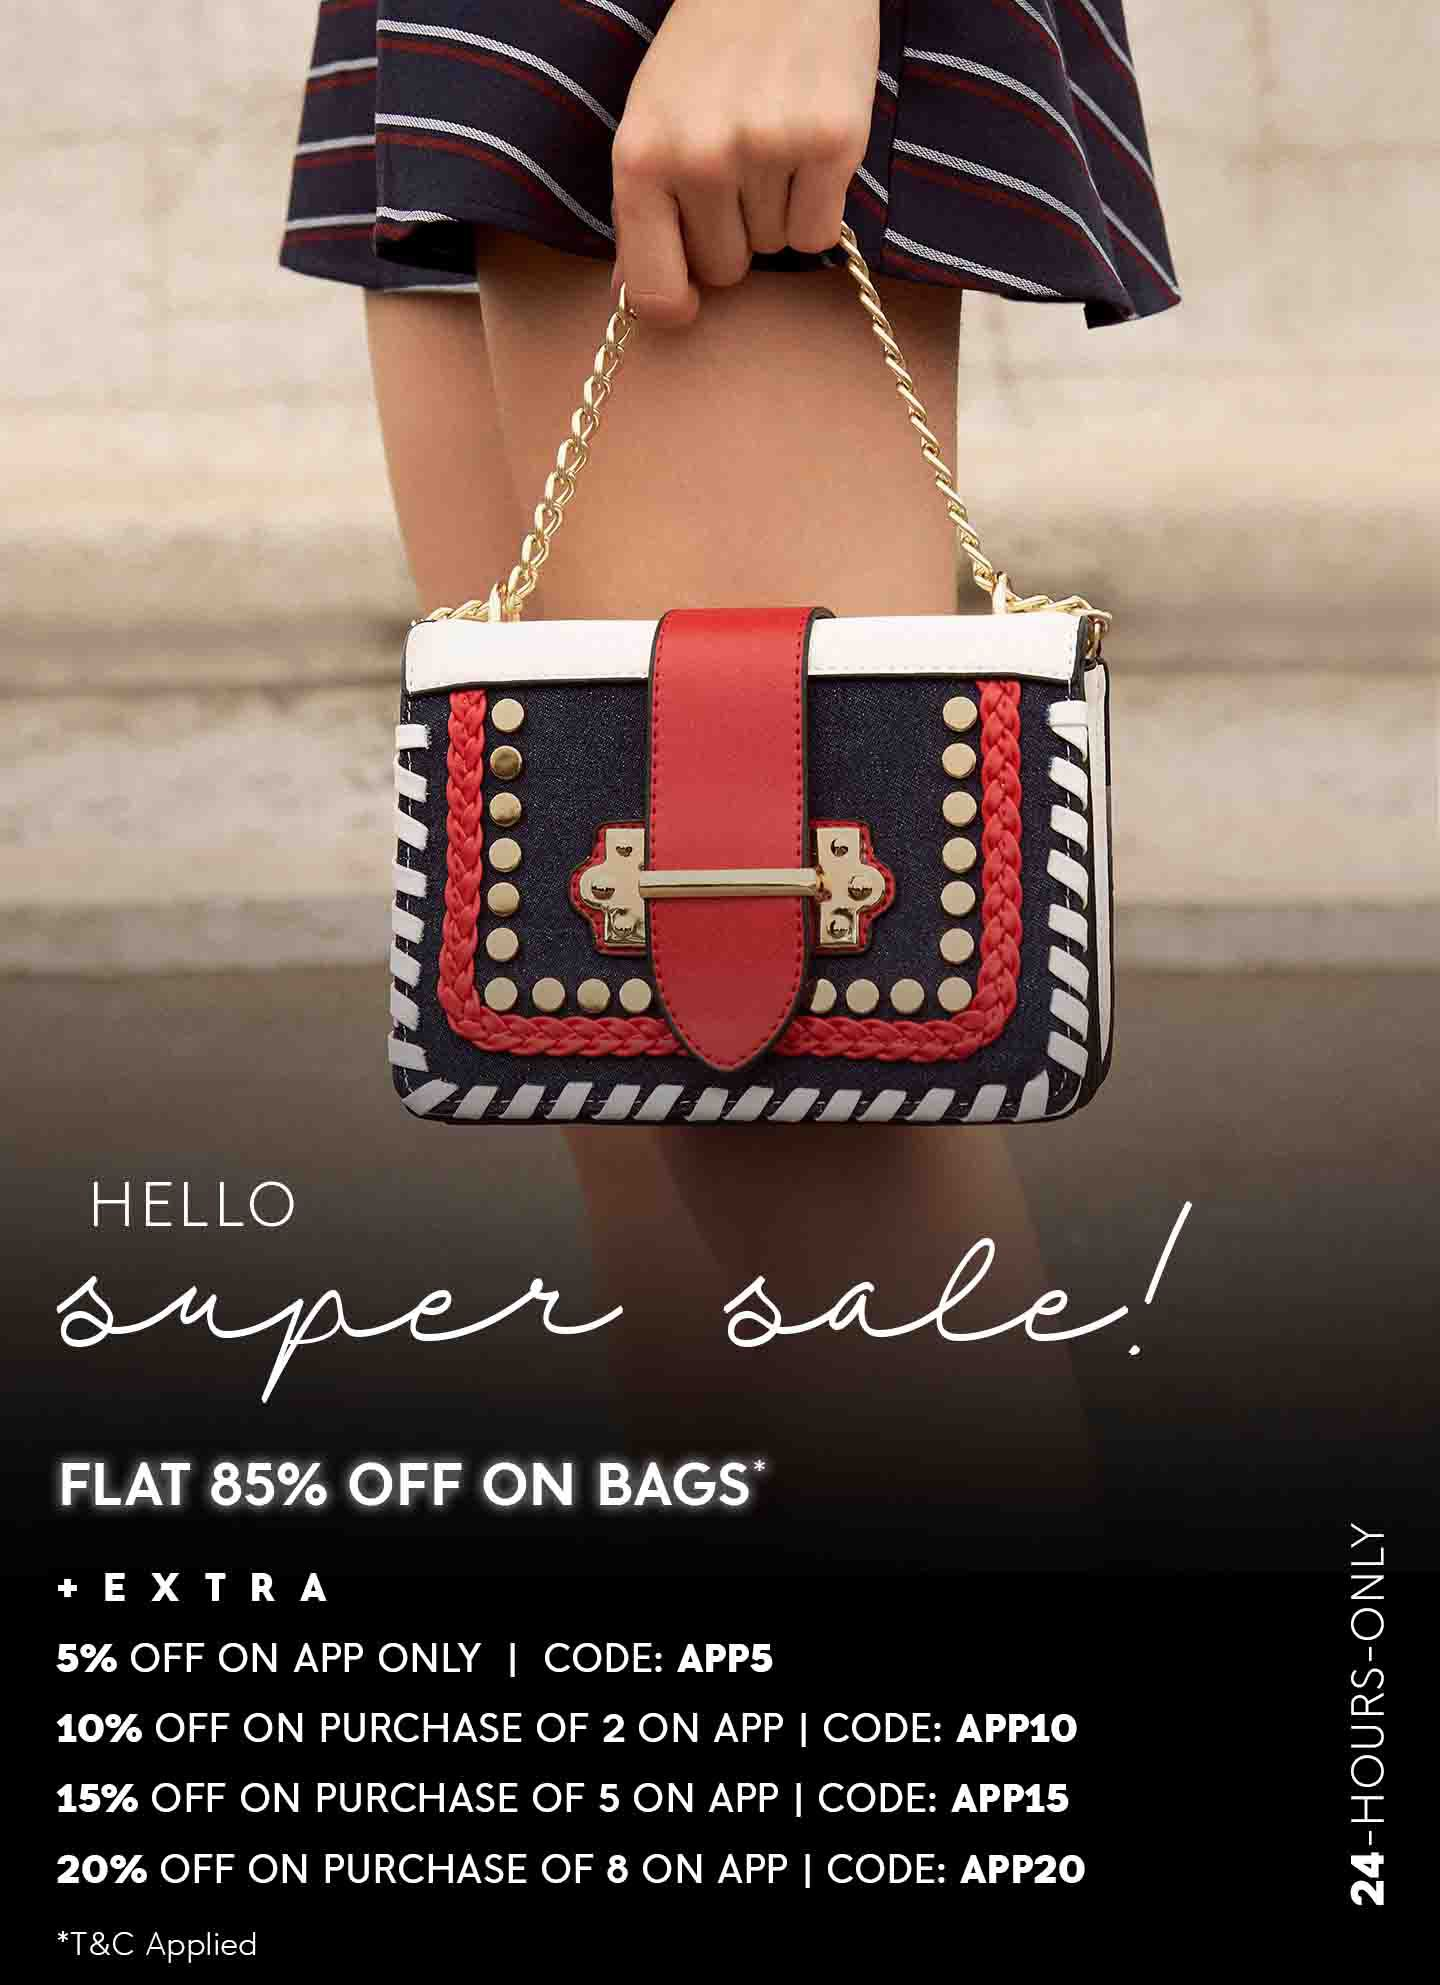 FLAT 85% OFF ON BAGS